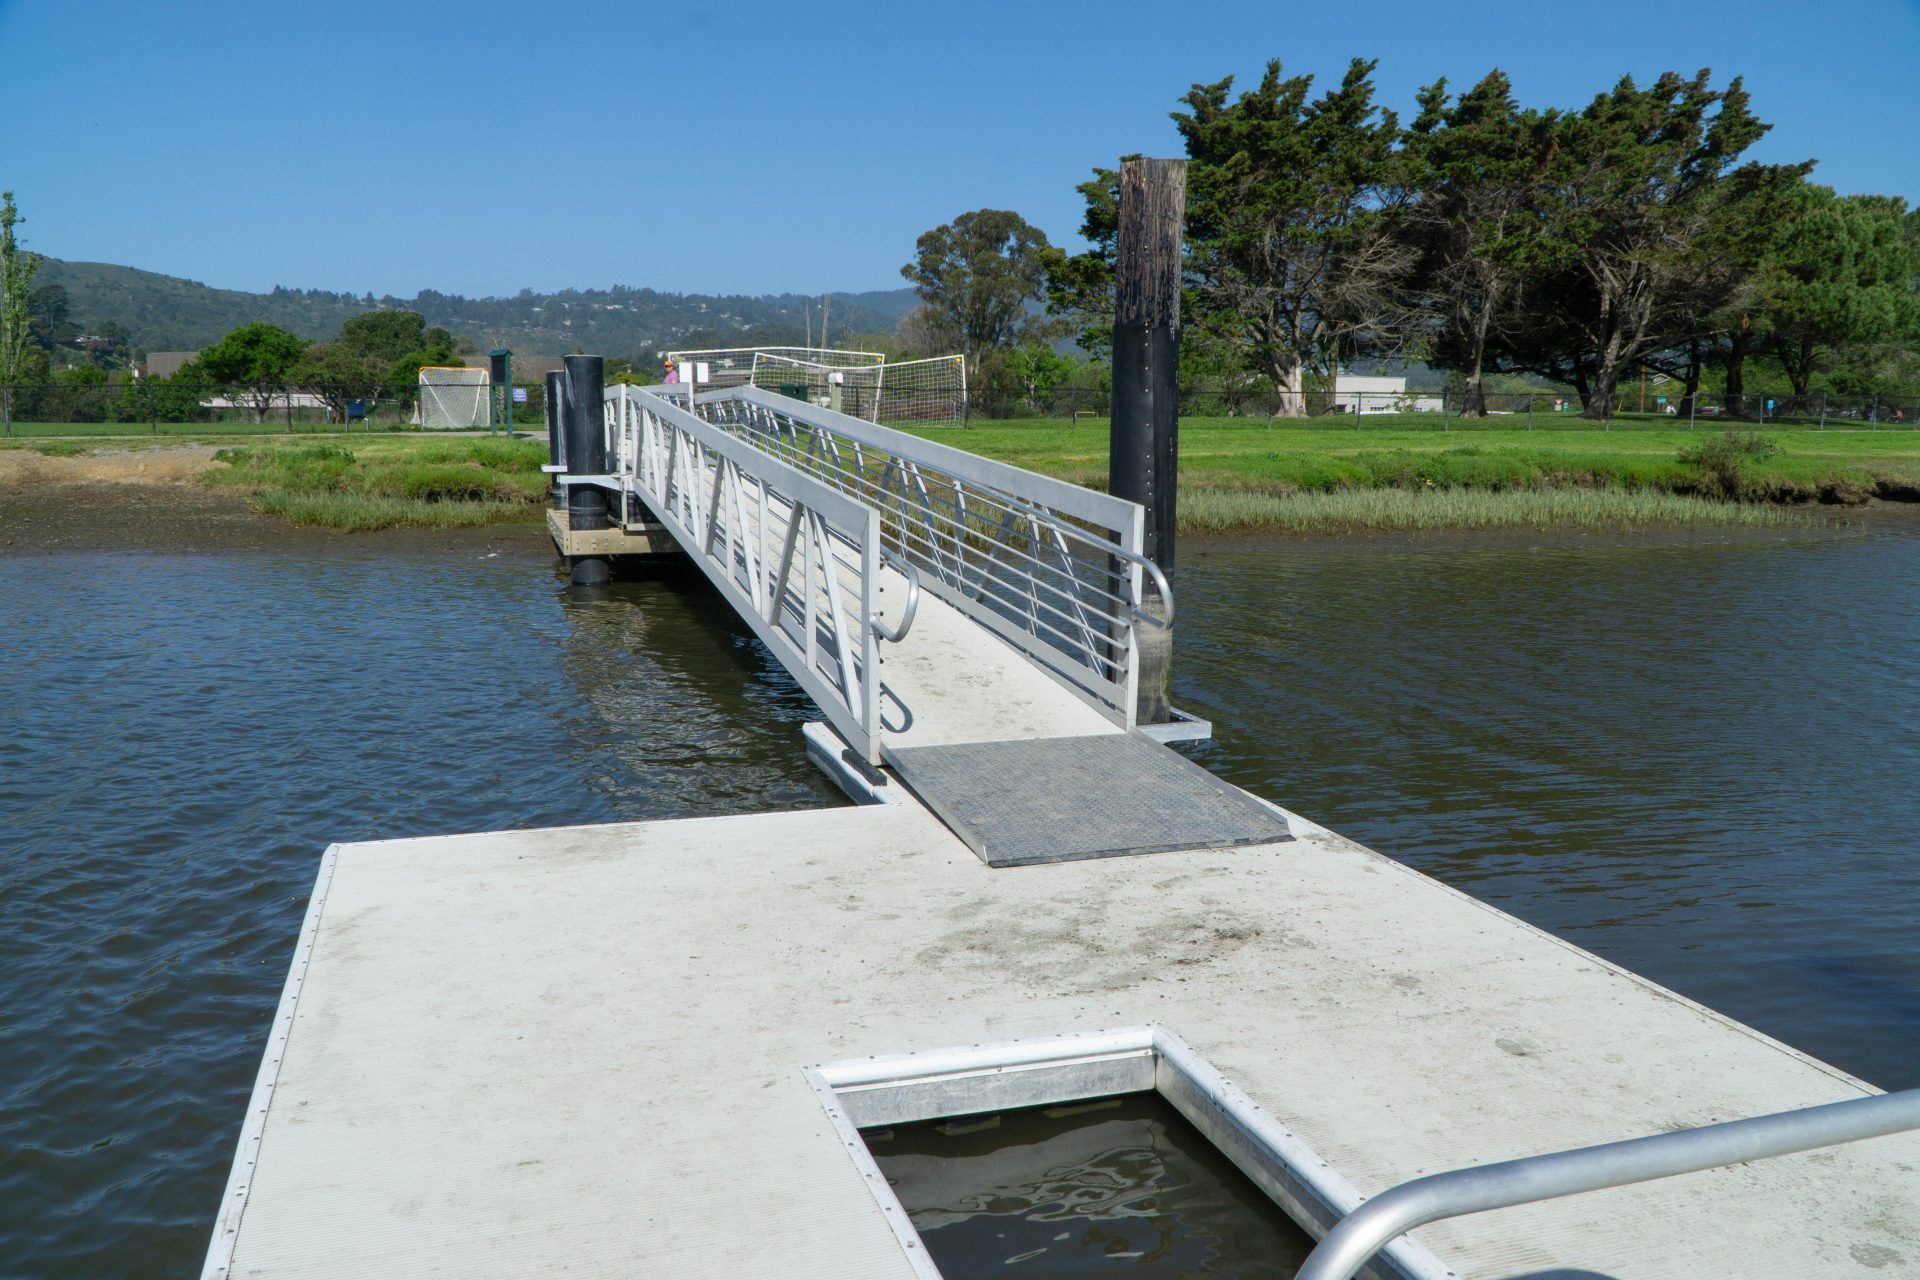 kayak-friendly pier with ramp to shore